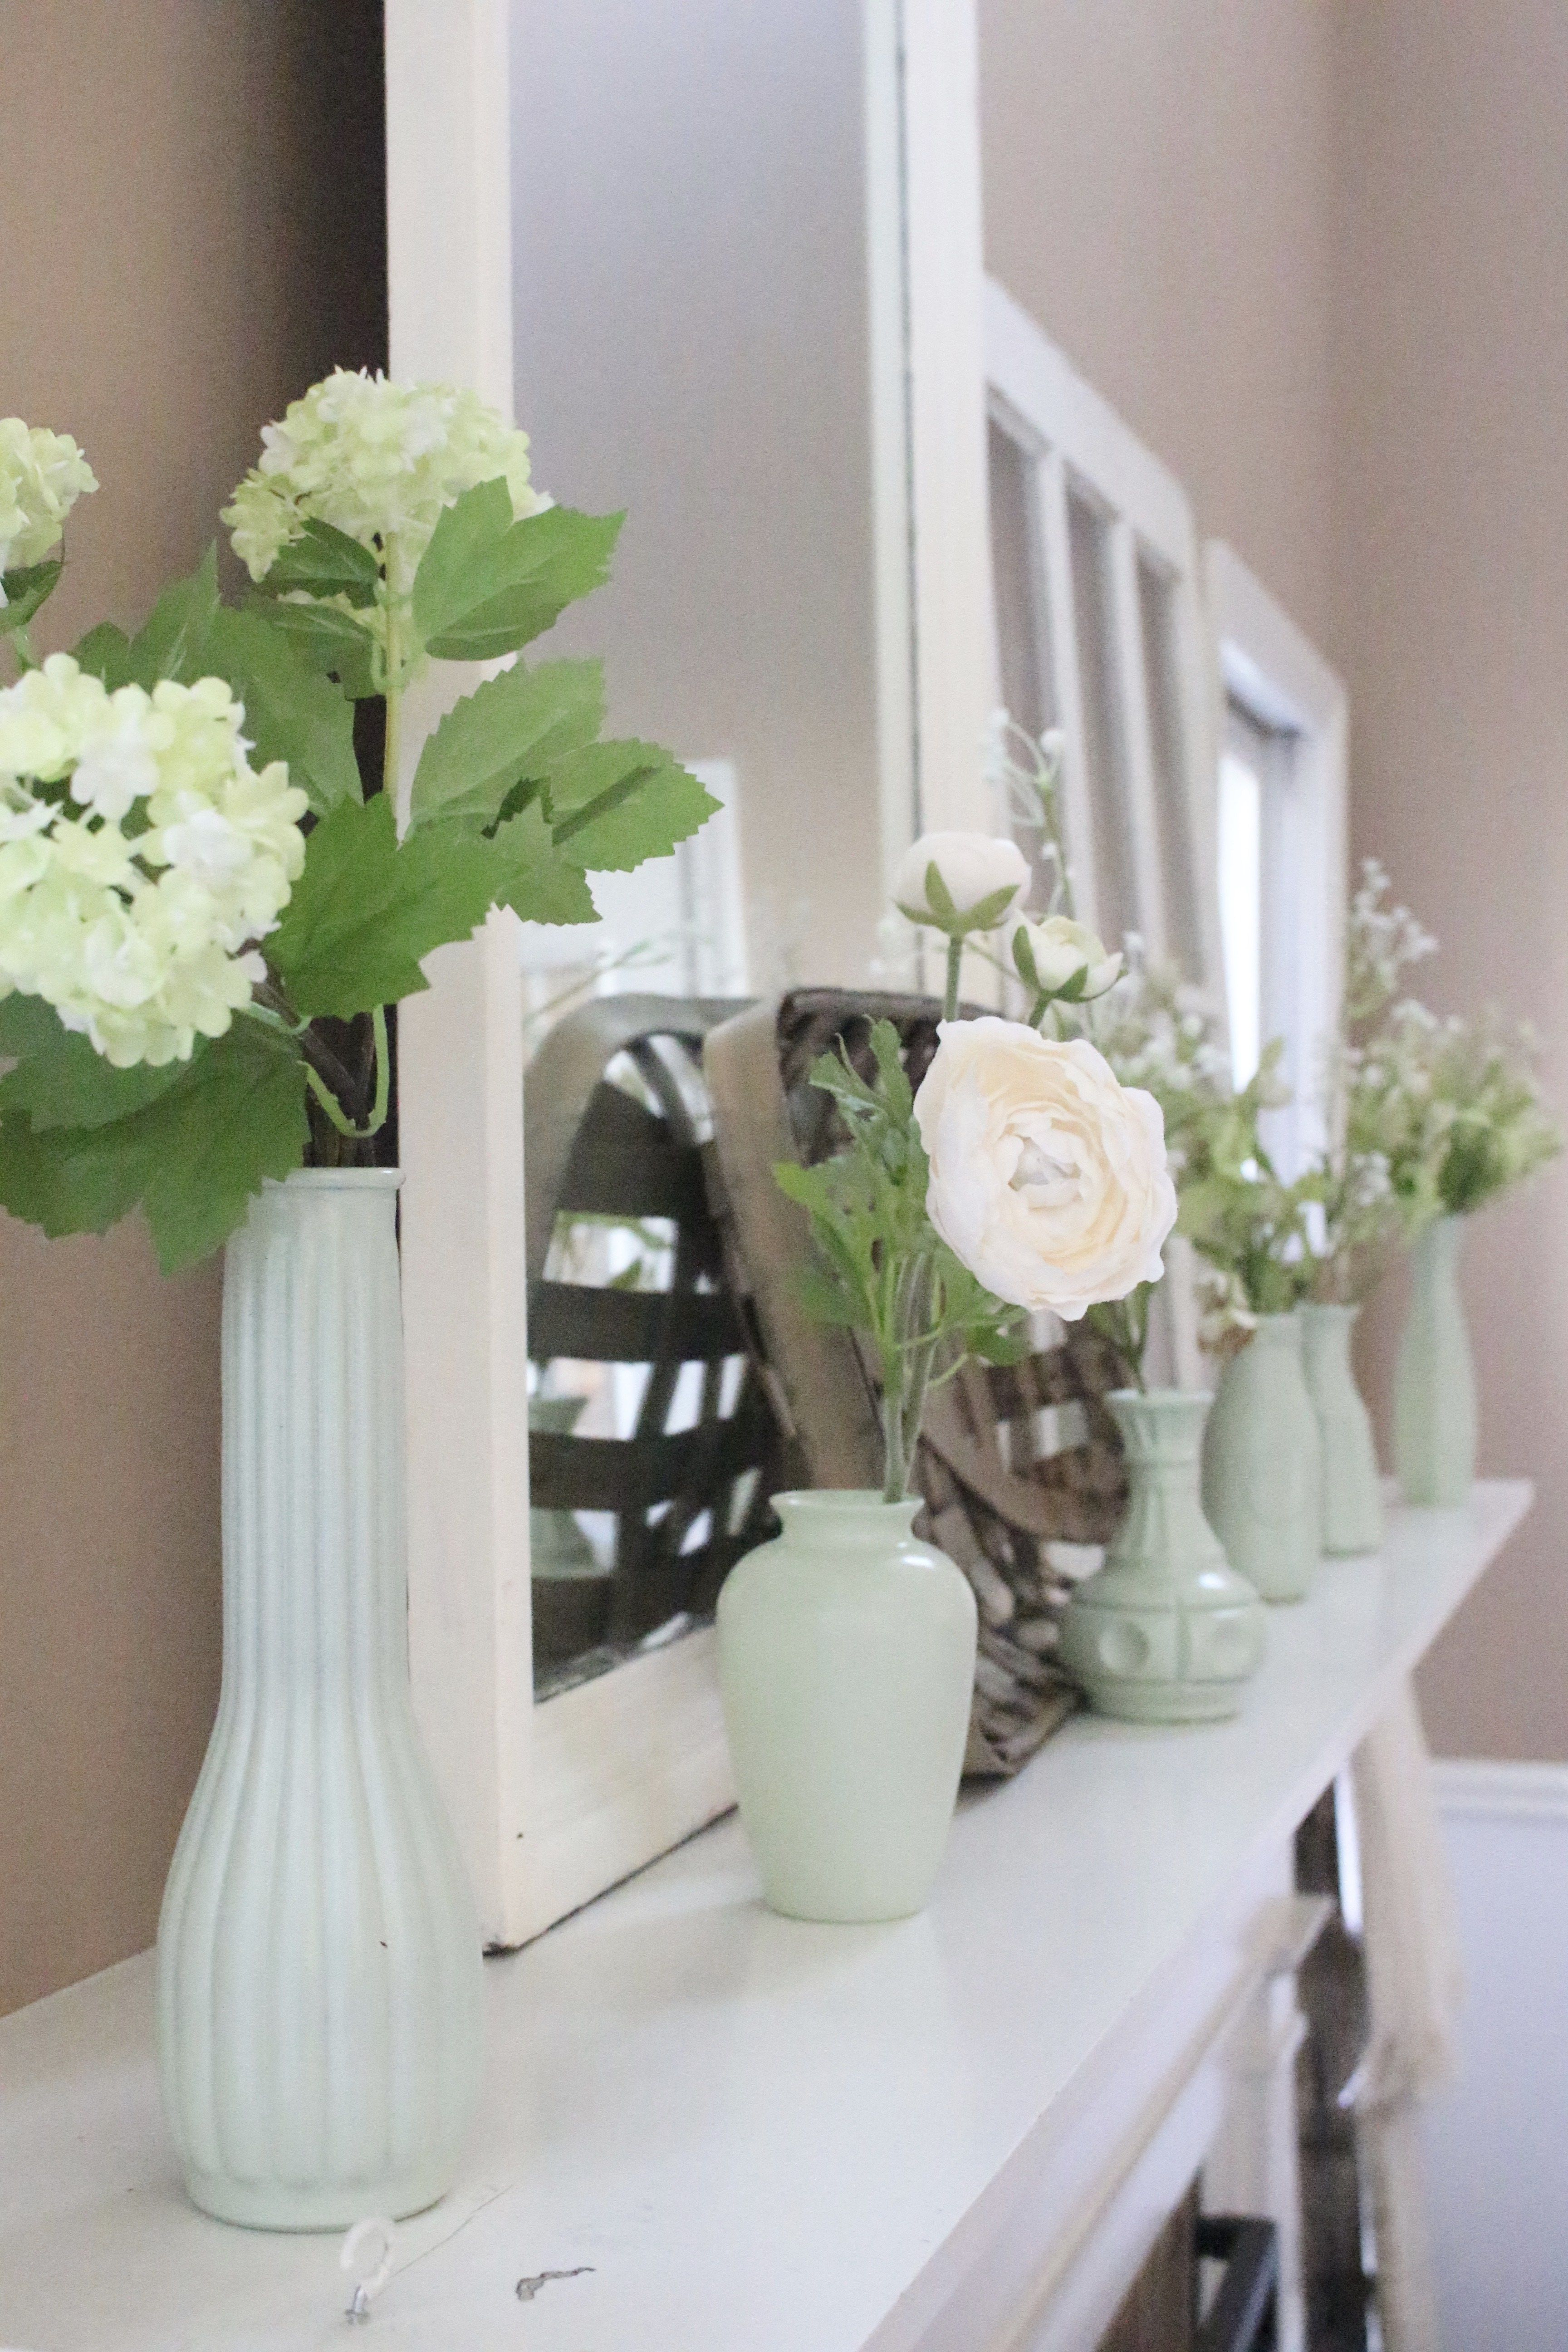 Spring mantel decorate your mantel series decor decorating spring mantel decorate your mantel series decor decorating milk glass spray paint floridaeventfo Images